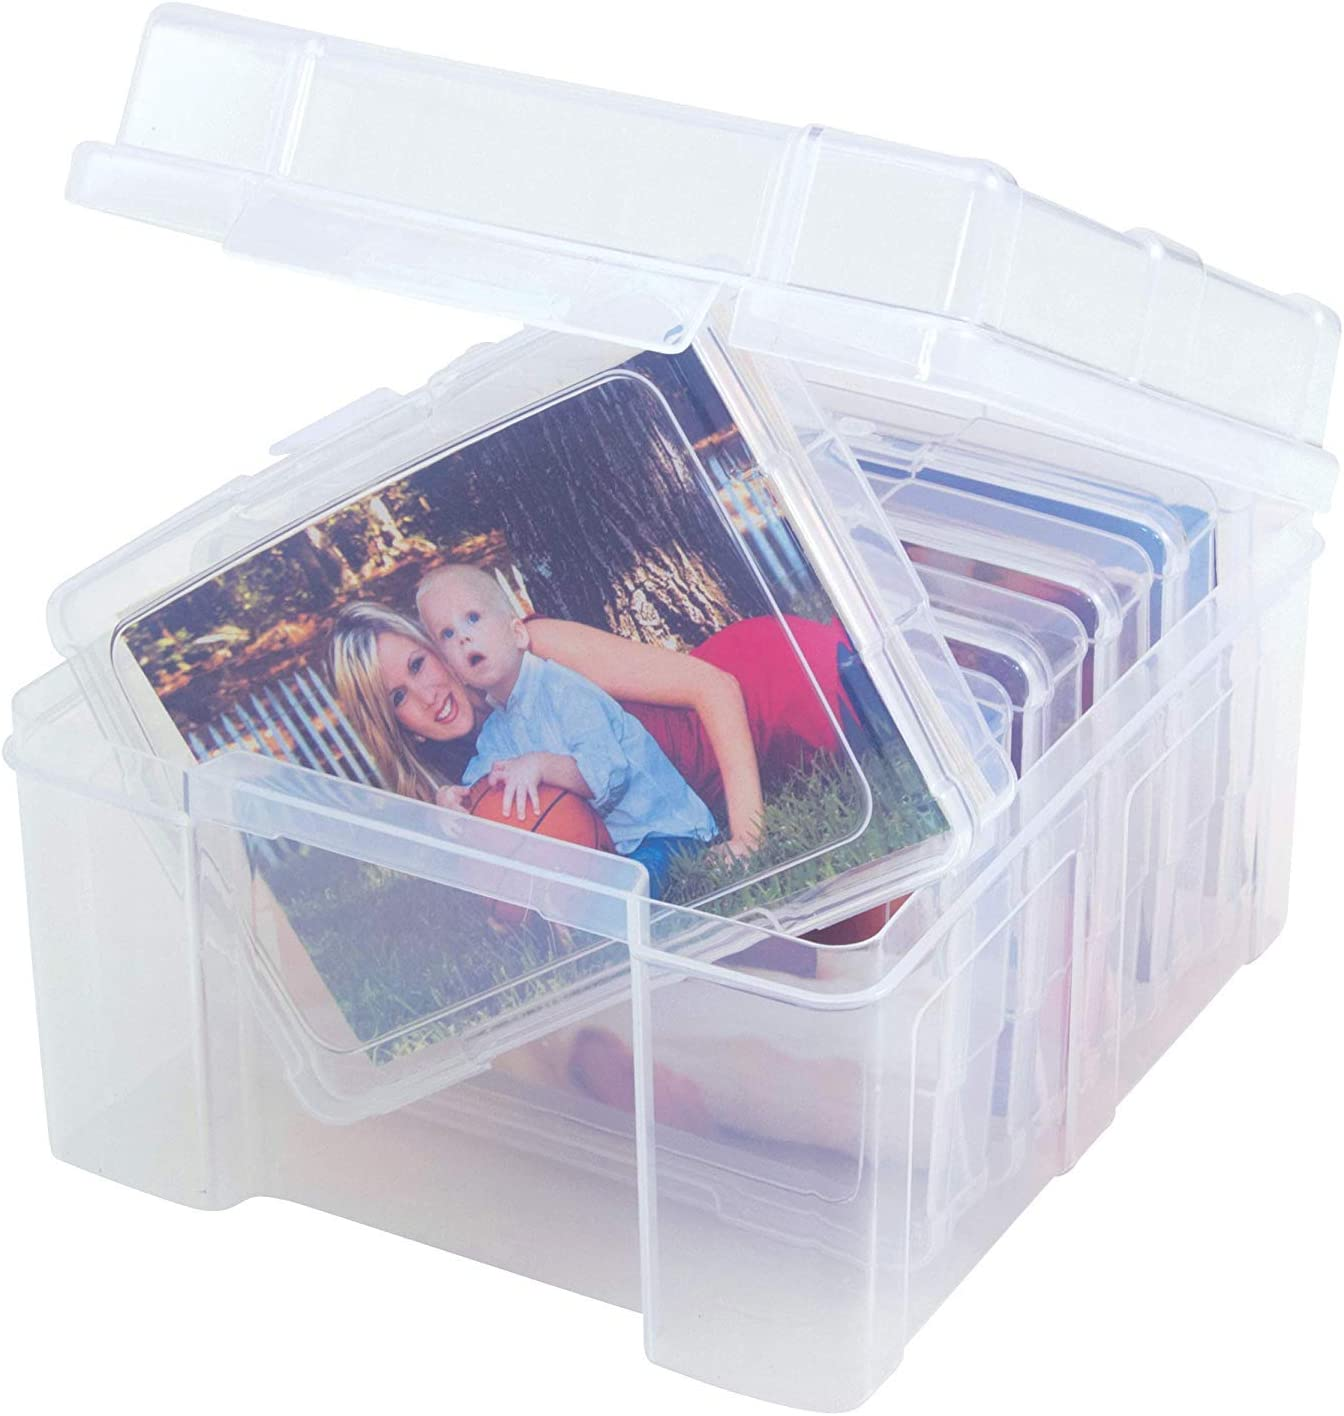 Advantus Photo Keeper Box with 6 Individual Clear Photo Cases Embellishment and Craft Storage Containers Pack 5 61989 Holds up to 600 Photos